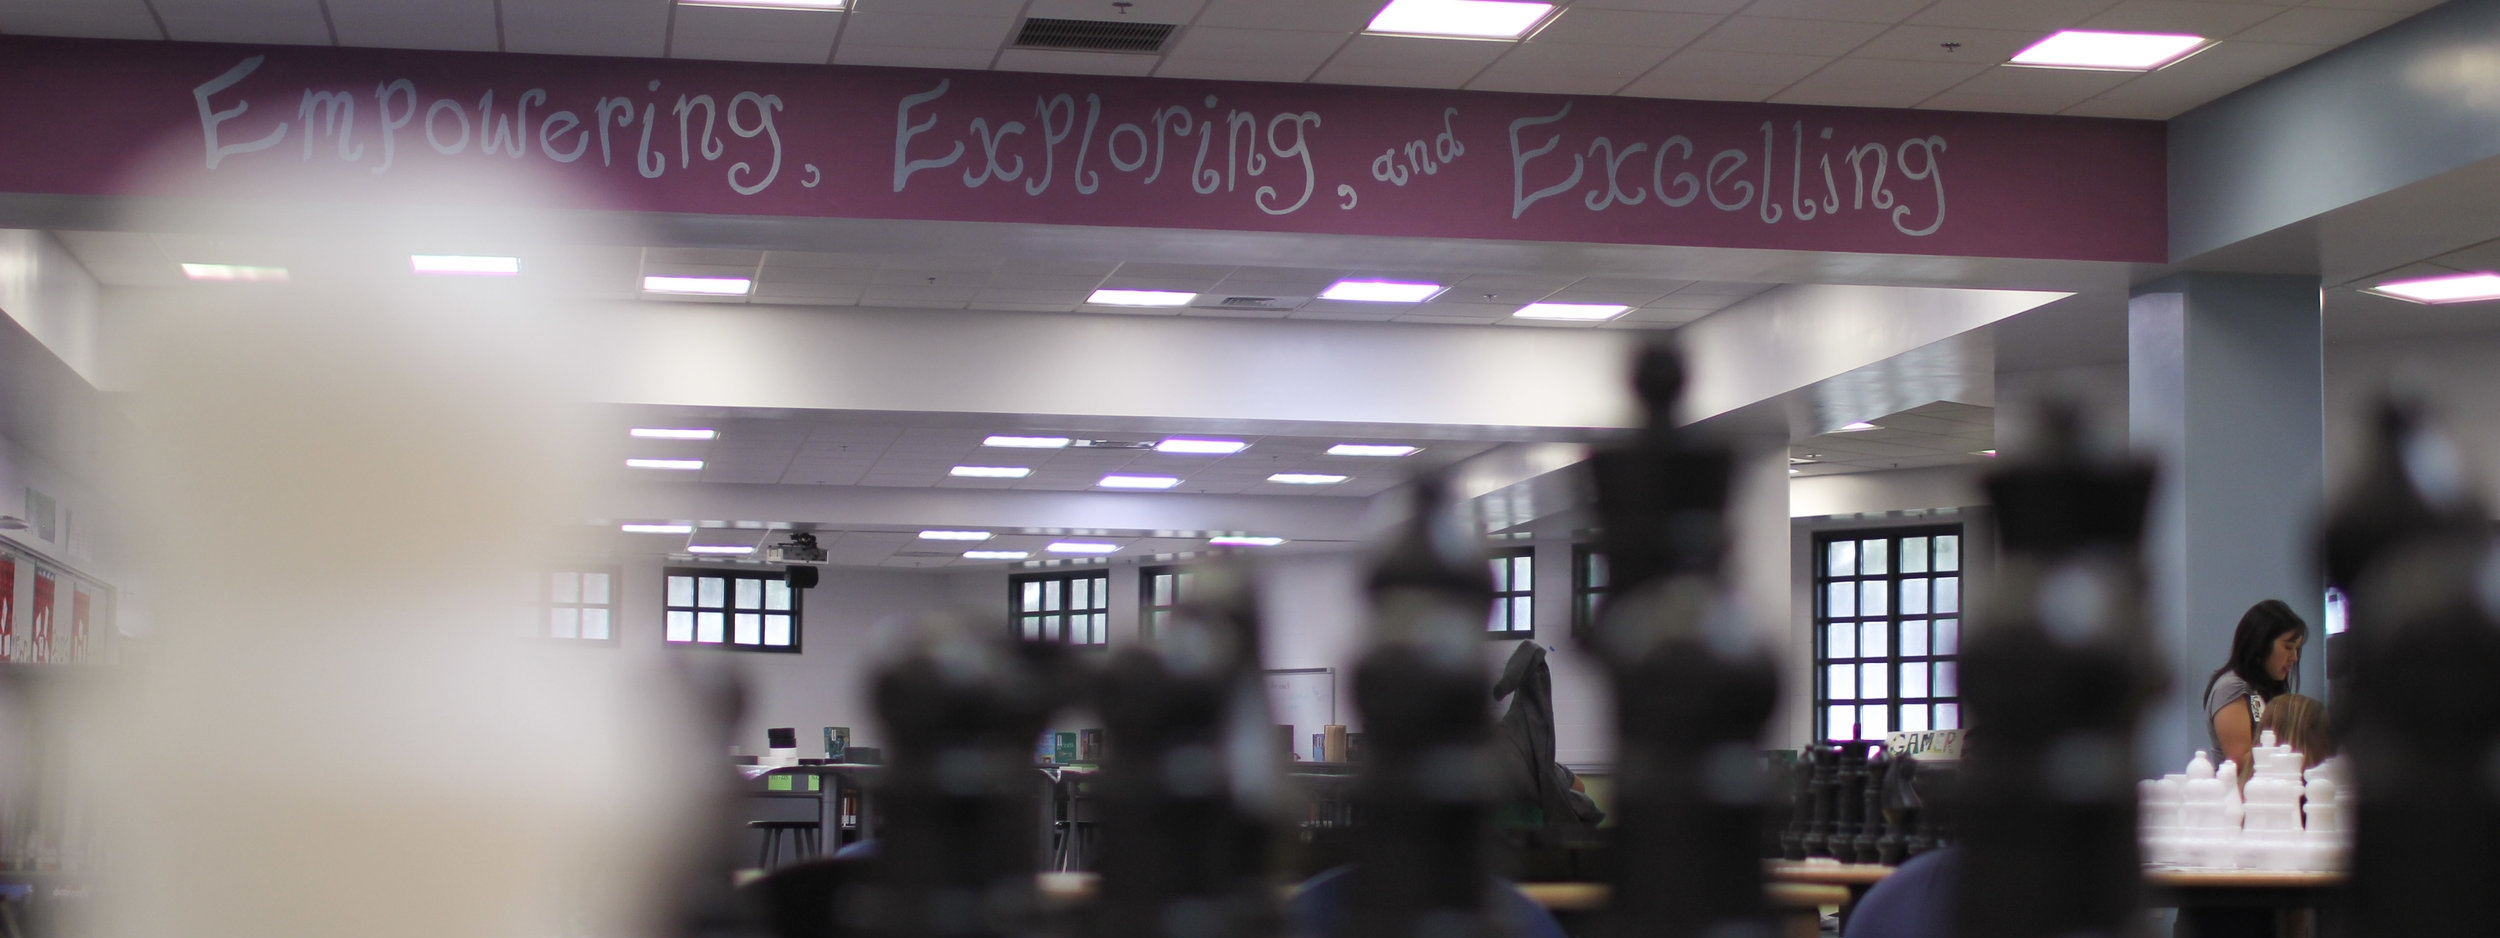 """""""Empowering, Exploring, and Excelling"""" painted in Ewa Makai Middle School's library."""